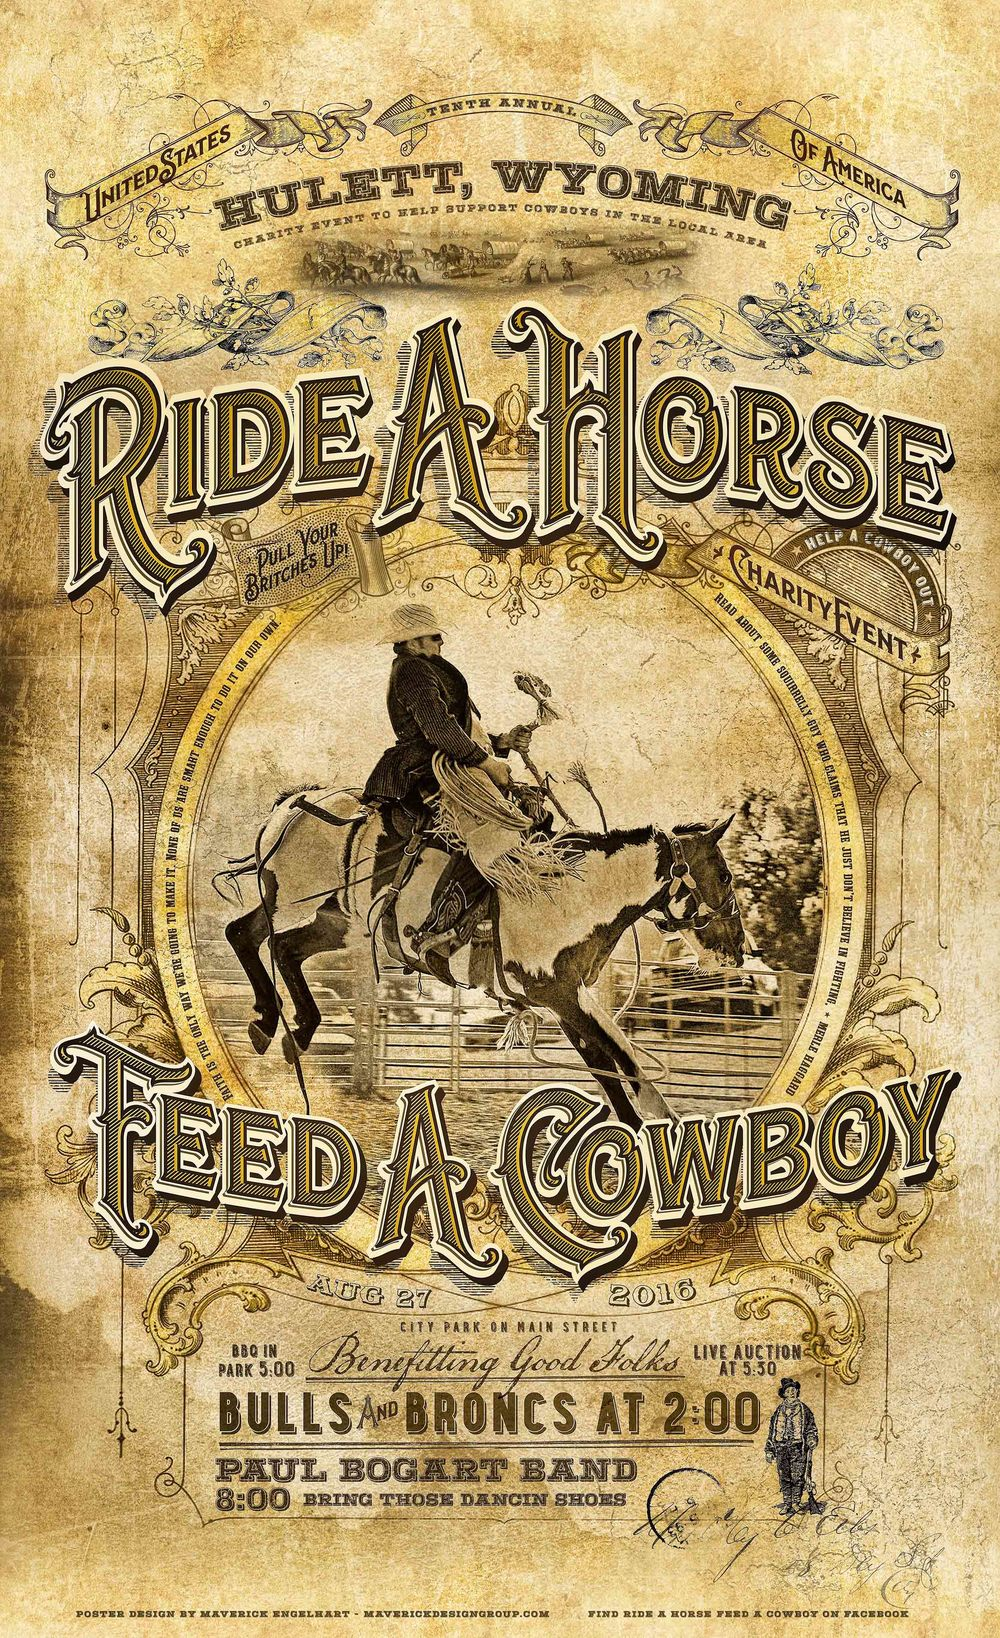 2016 Ride A Horse Feed A Cowboy Charity Event Poster